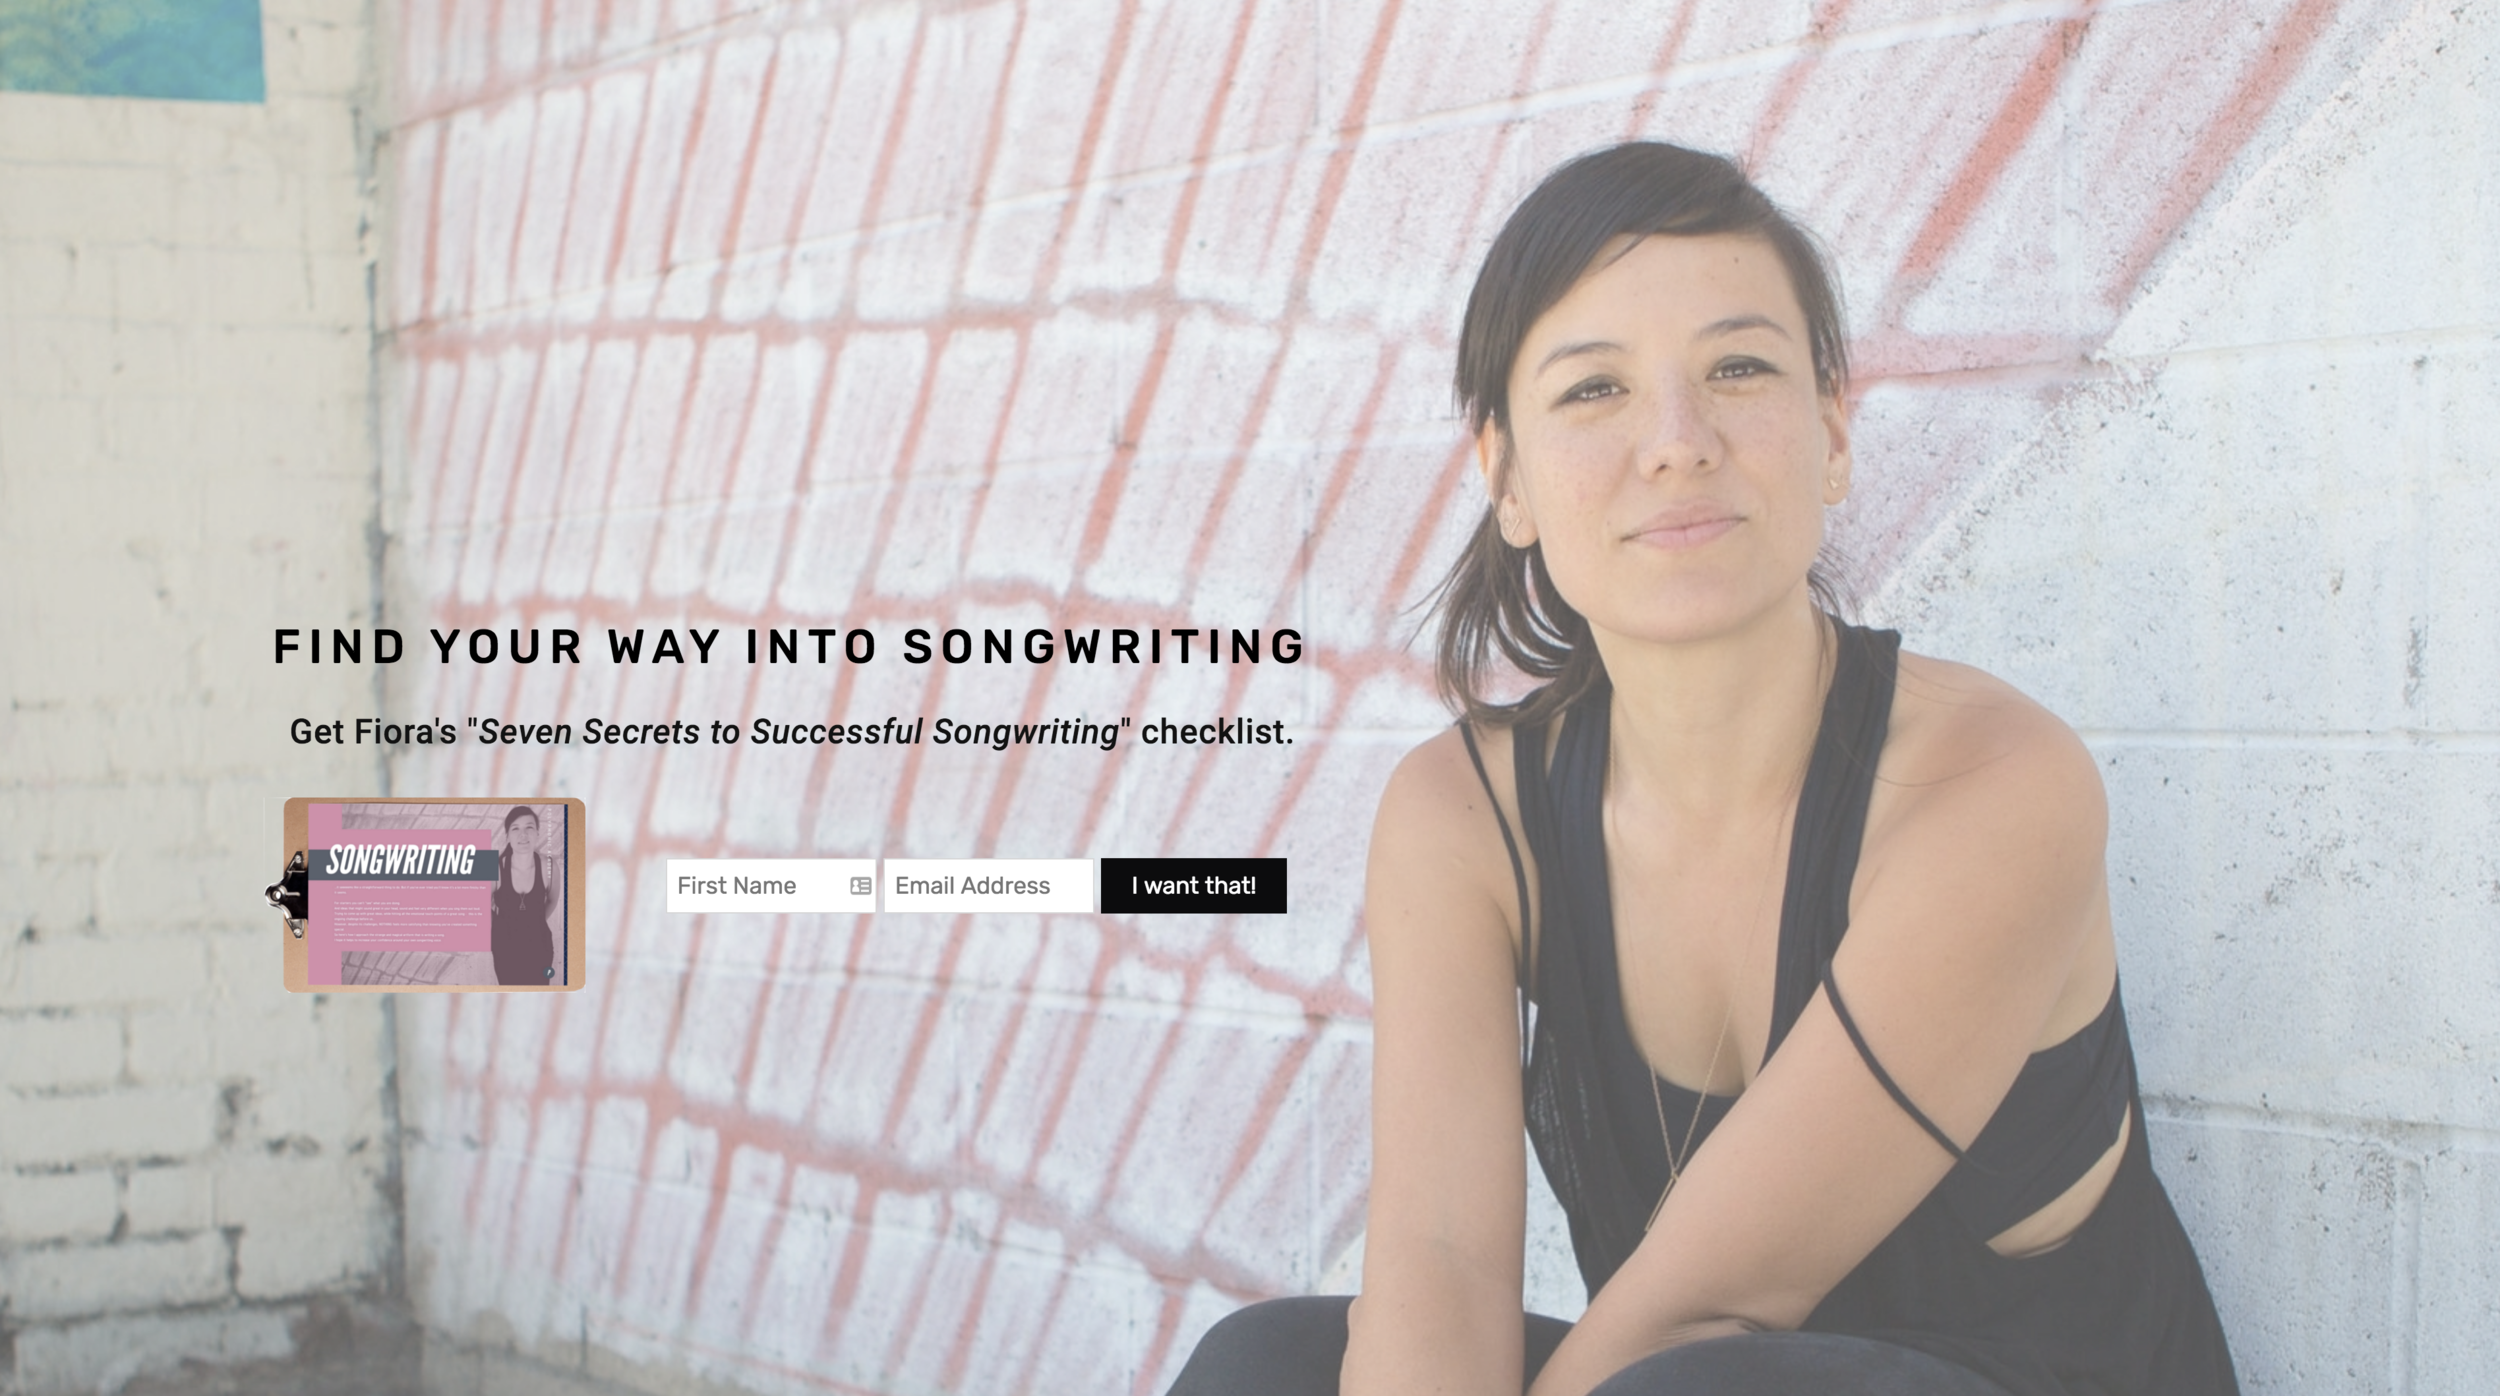 Songwriting With Fiora Site